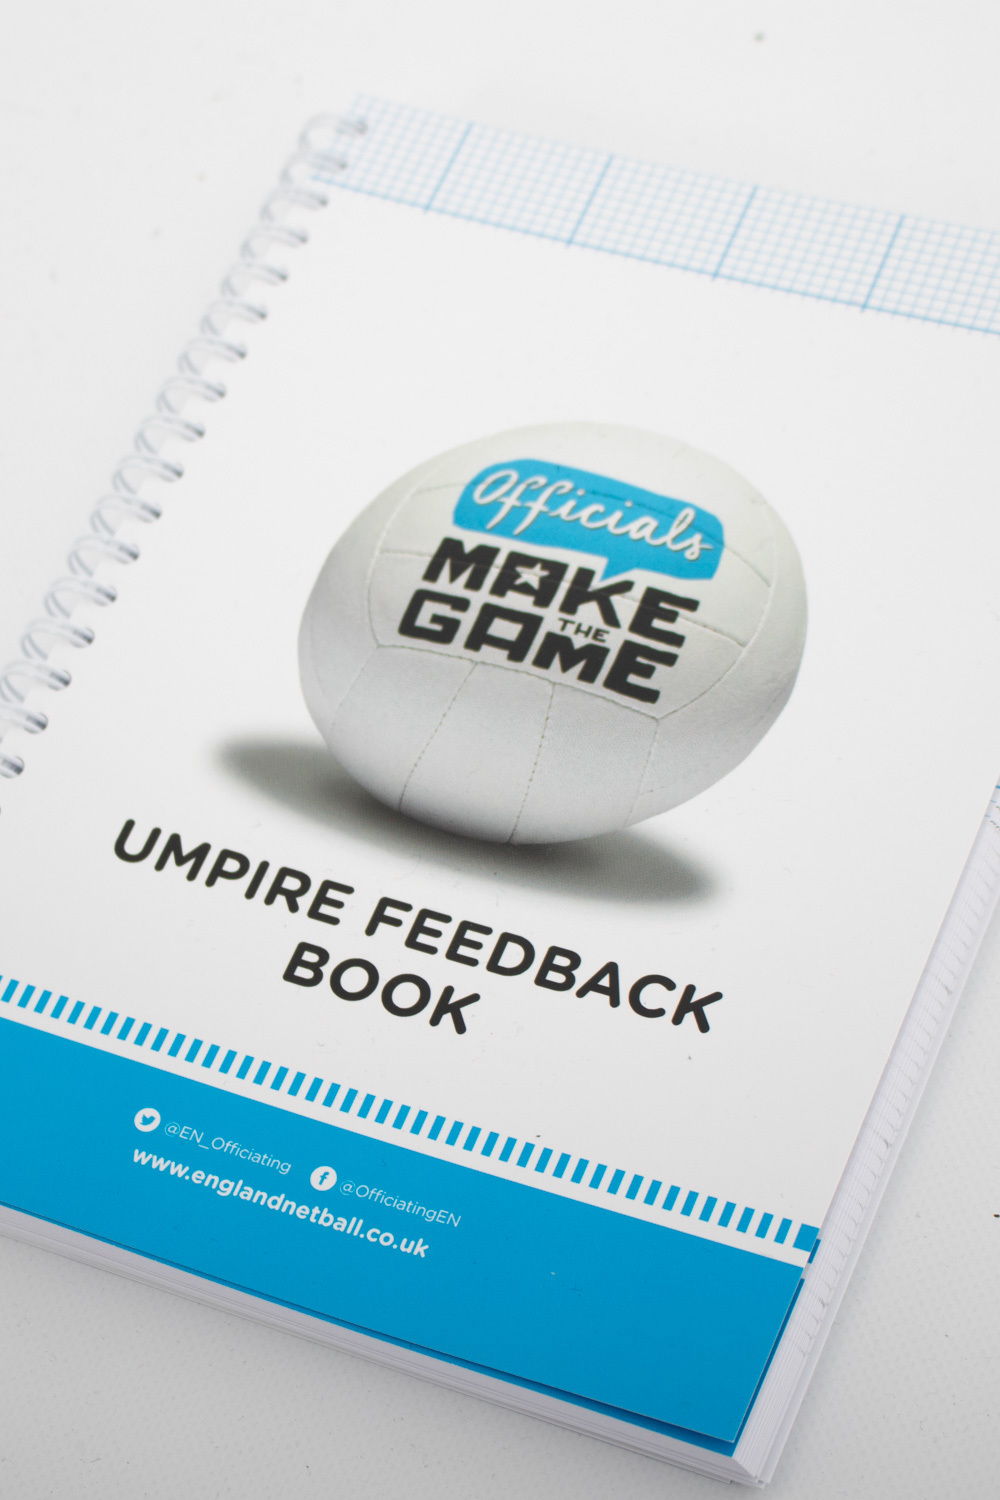 Umpire Feedback Book